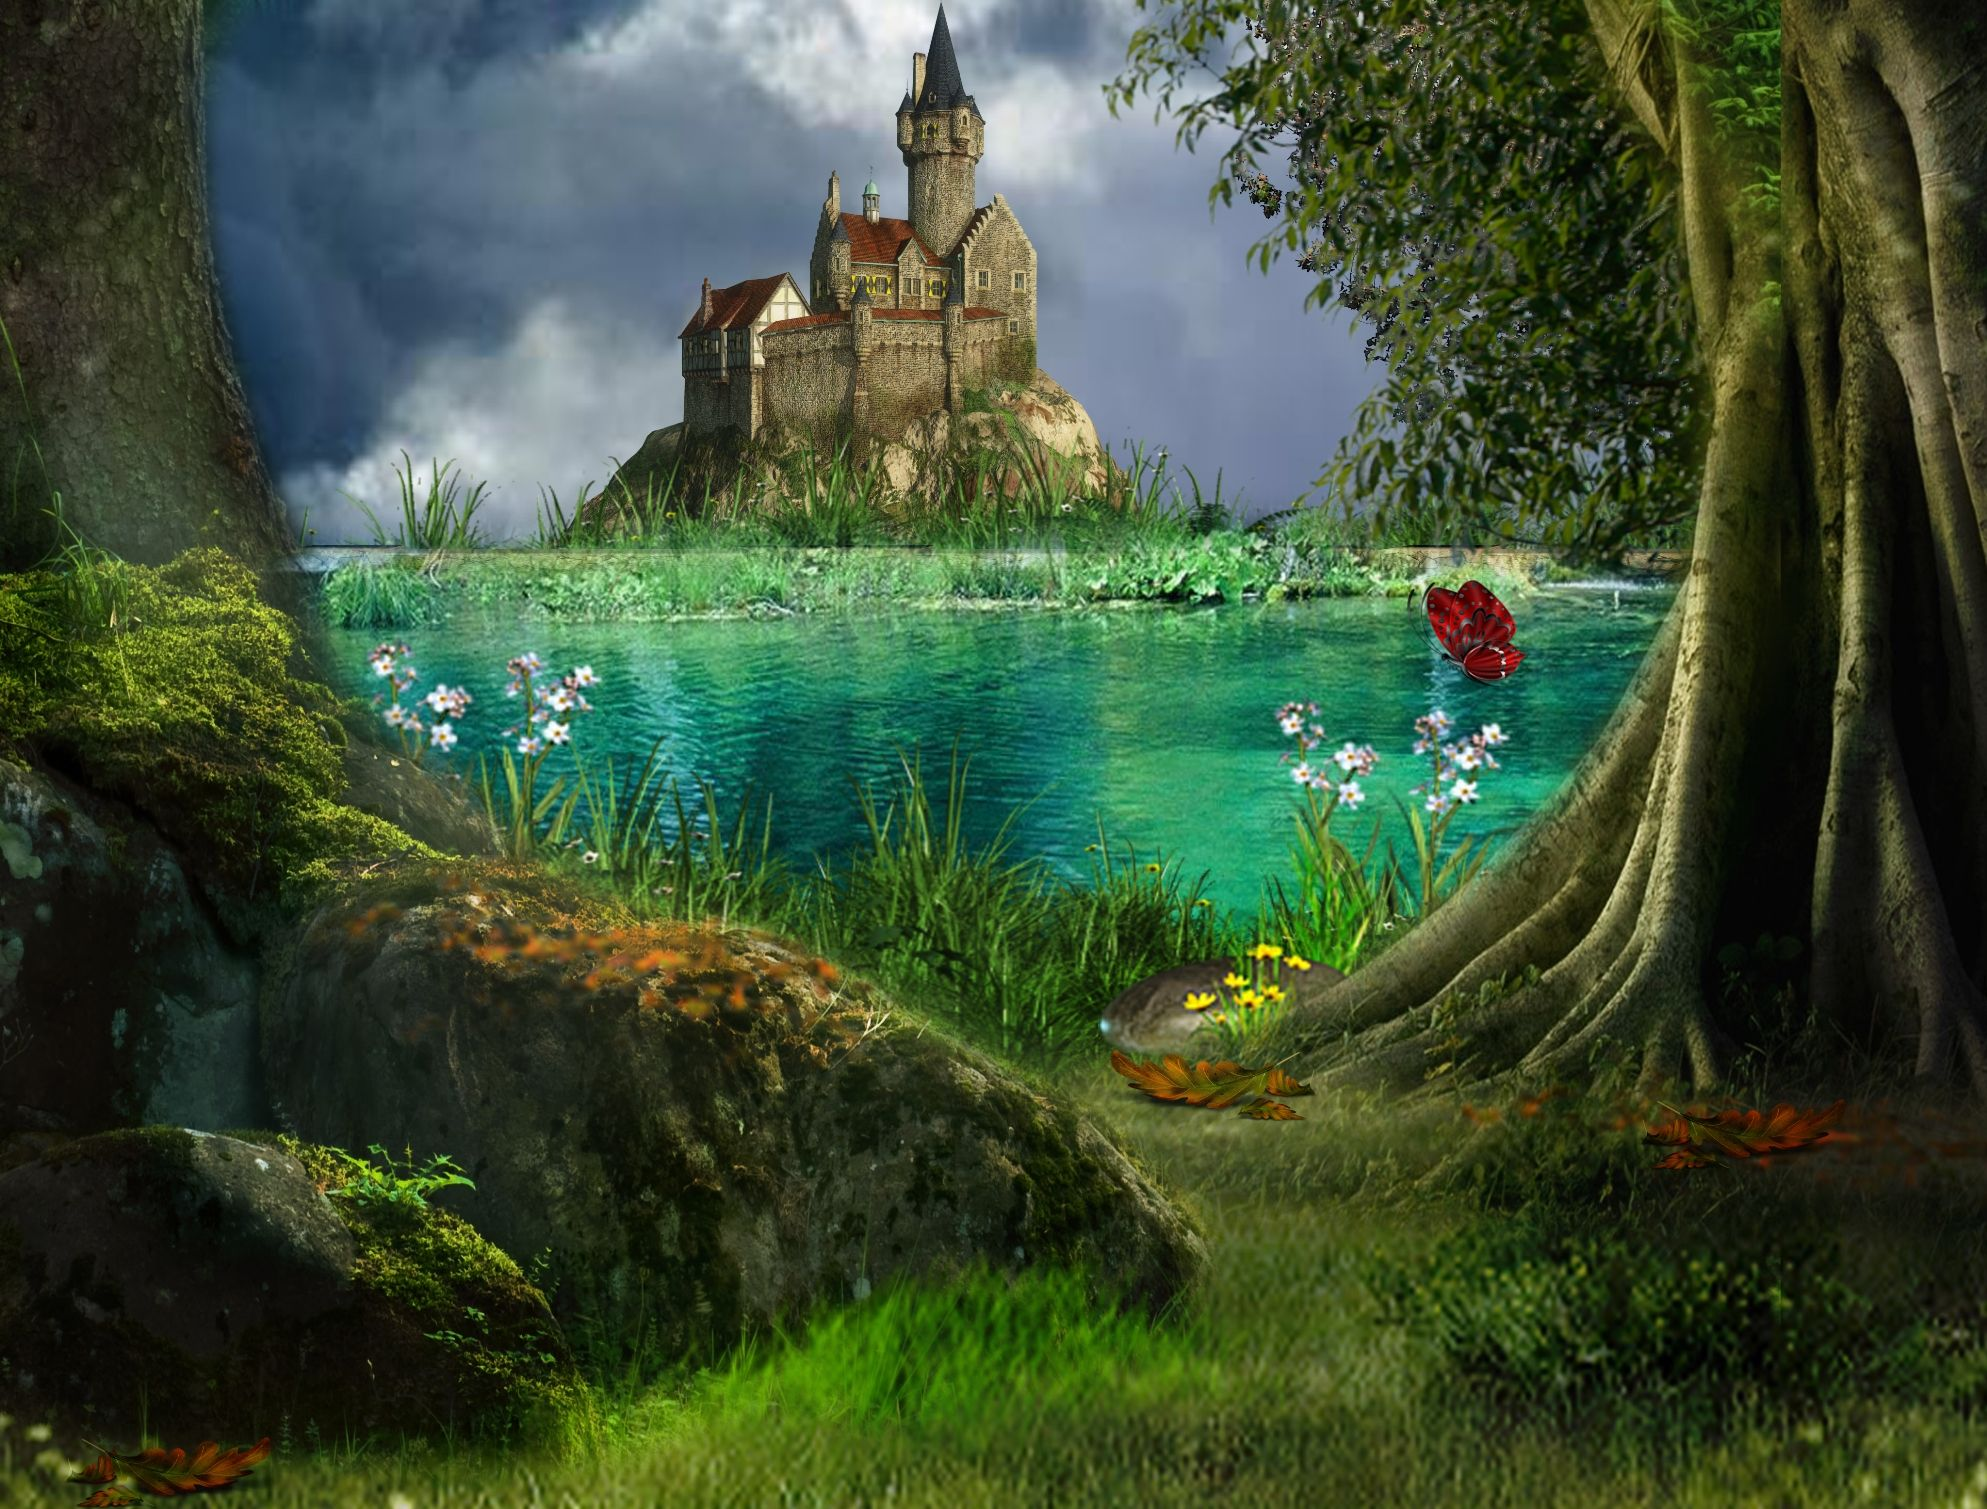 Magical Fairytale Castle and Surrounding | Book Ideas ...